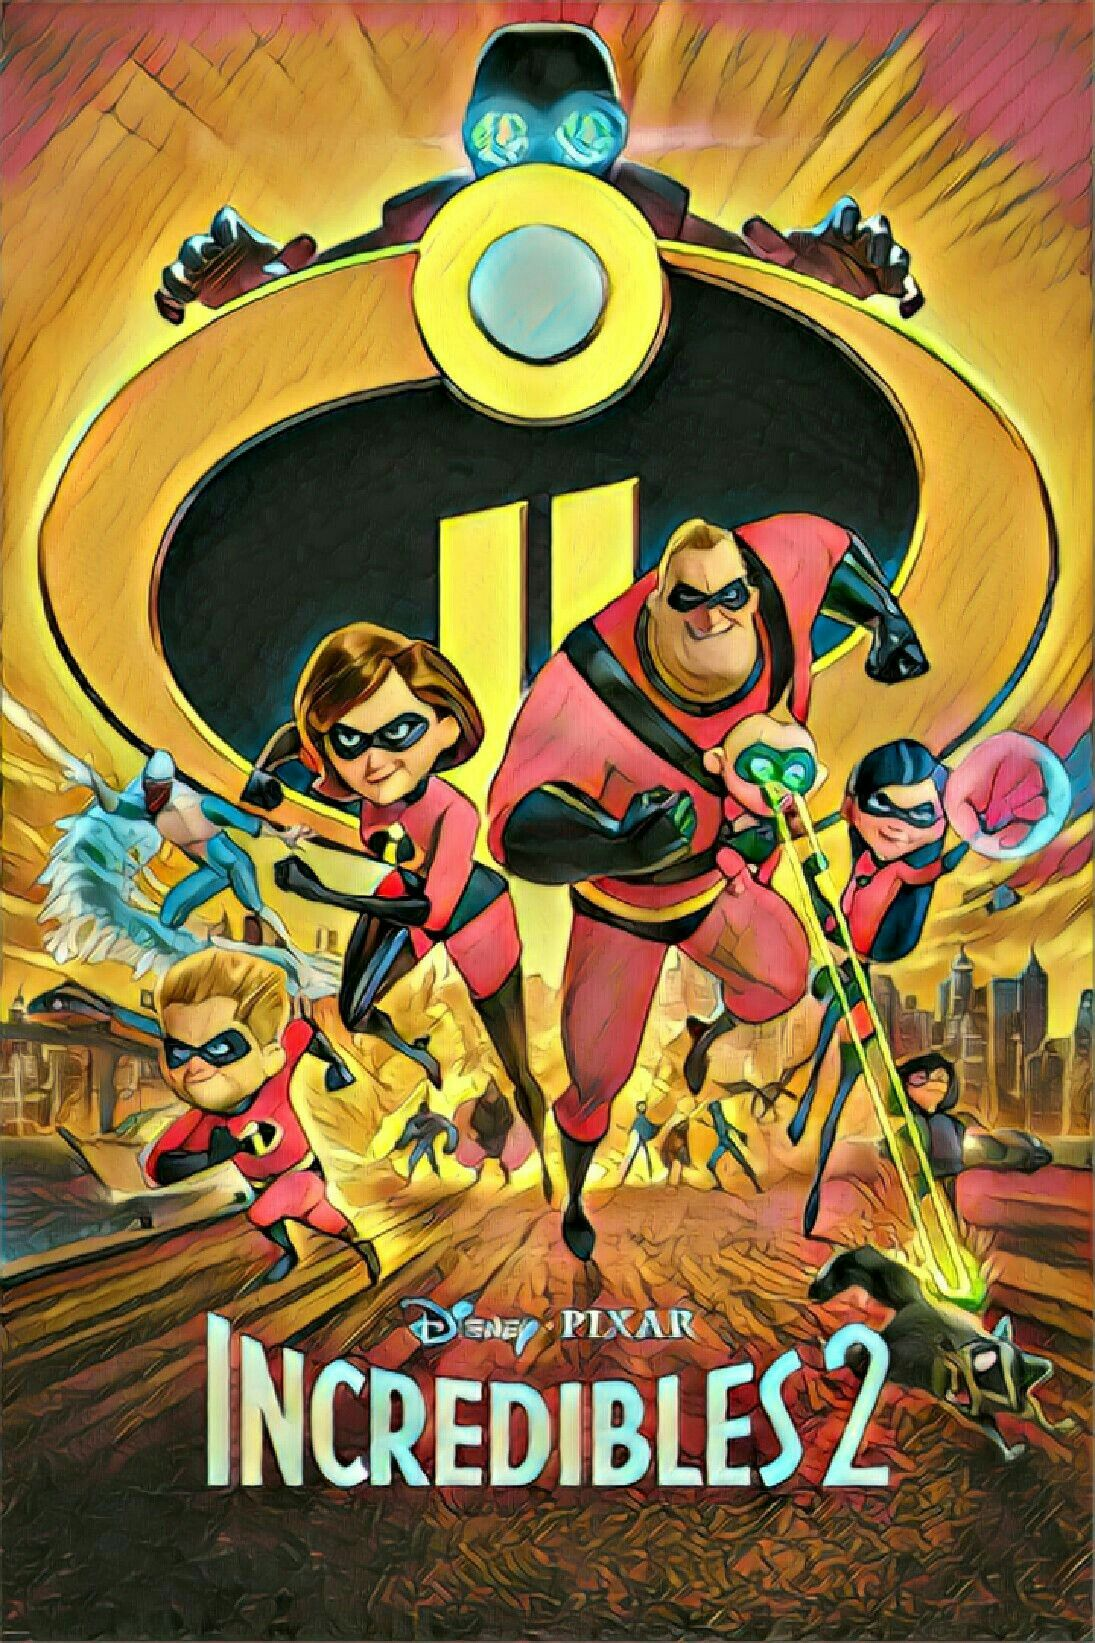 The Incredibles 2 Movie Poster Cartoon Versions Of Movie Posters Movieposters Movies Cartoon Scifi Mo Alternative Movie Posters Movie Posters Disney Movies